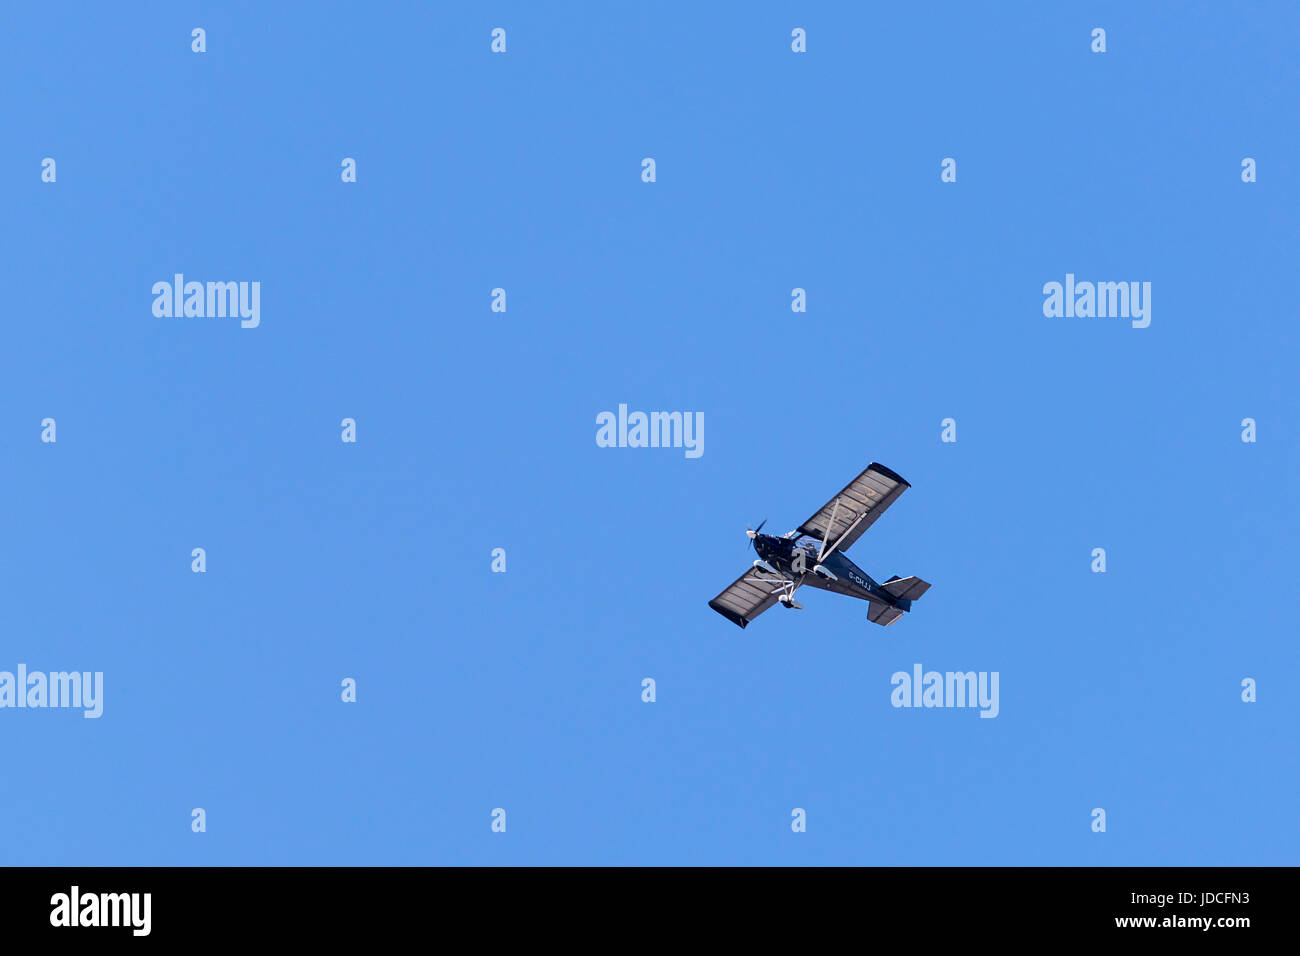 Microlite type private aircraft in a big clear bue sky. - Stock Image